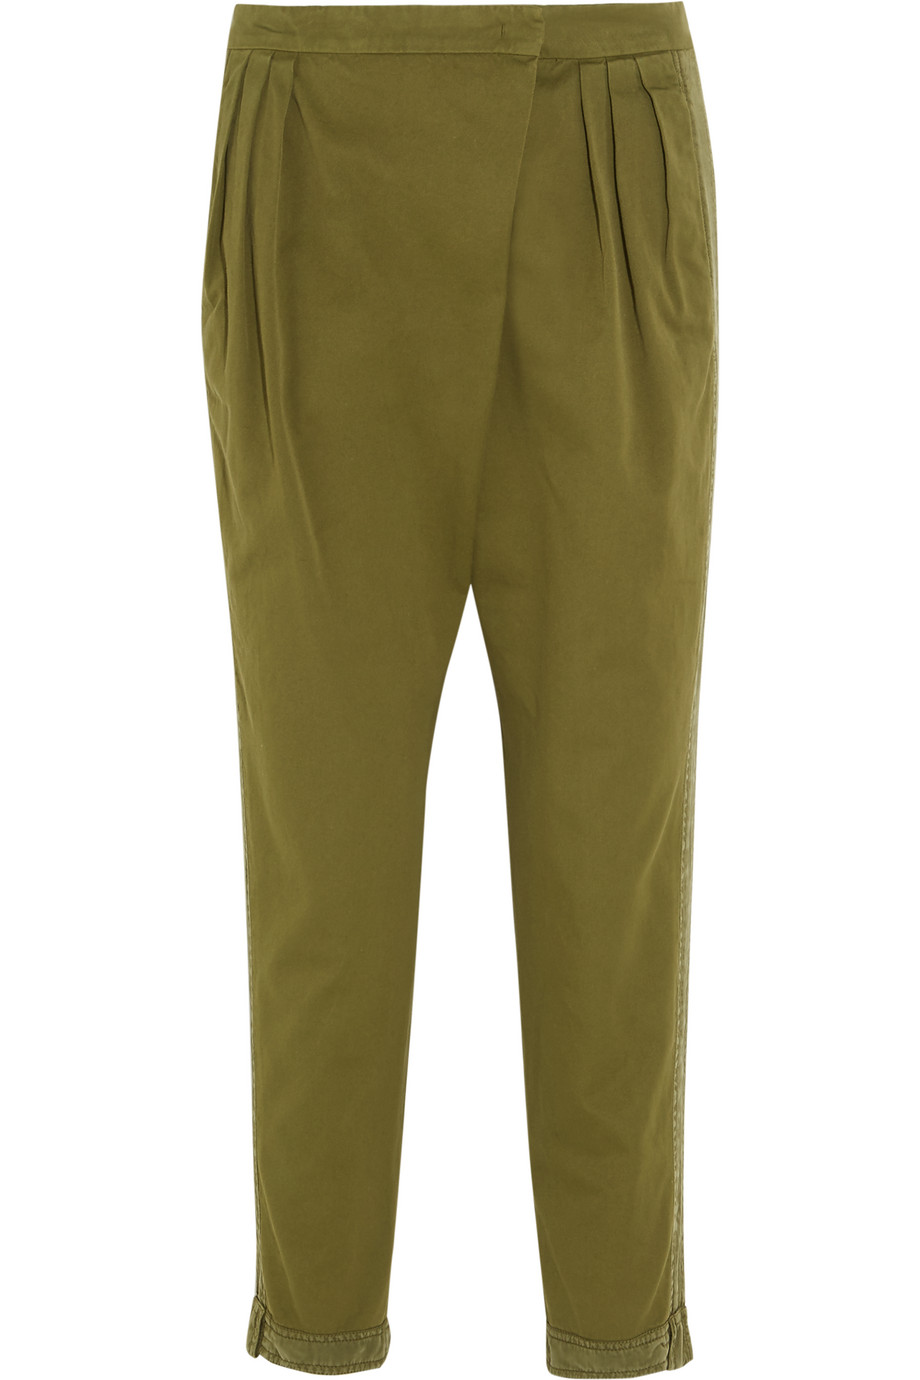 Givenchy Tapered Pants in Silk-Trimmed Army-Green Cotton-Twill, Army Green, Women's, Size: 38